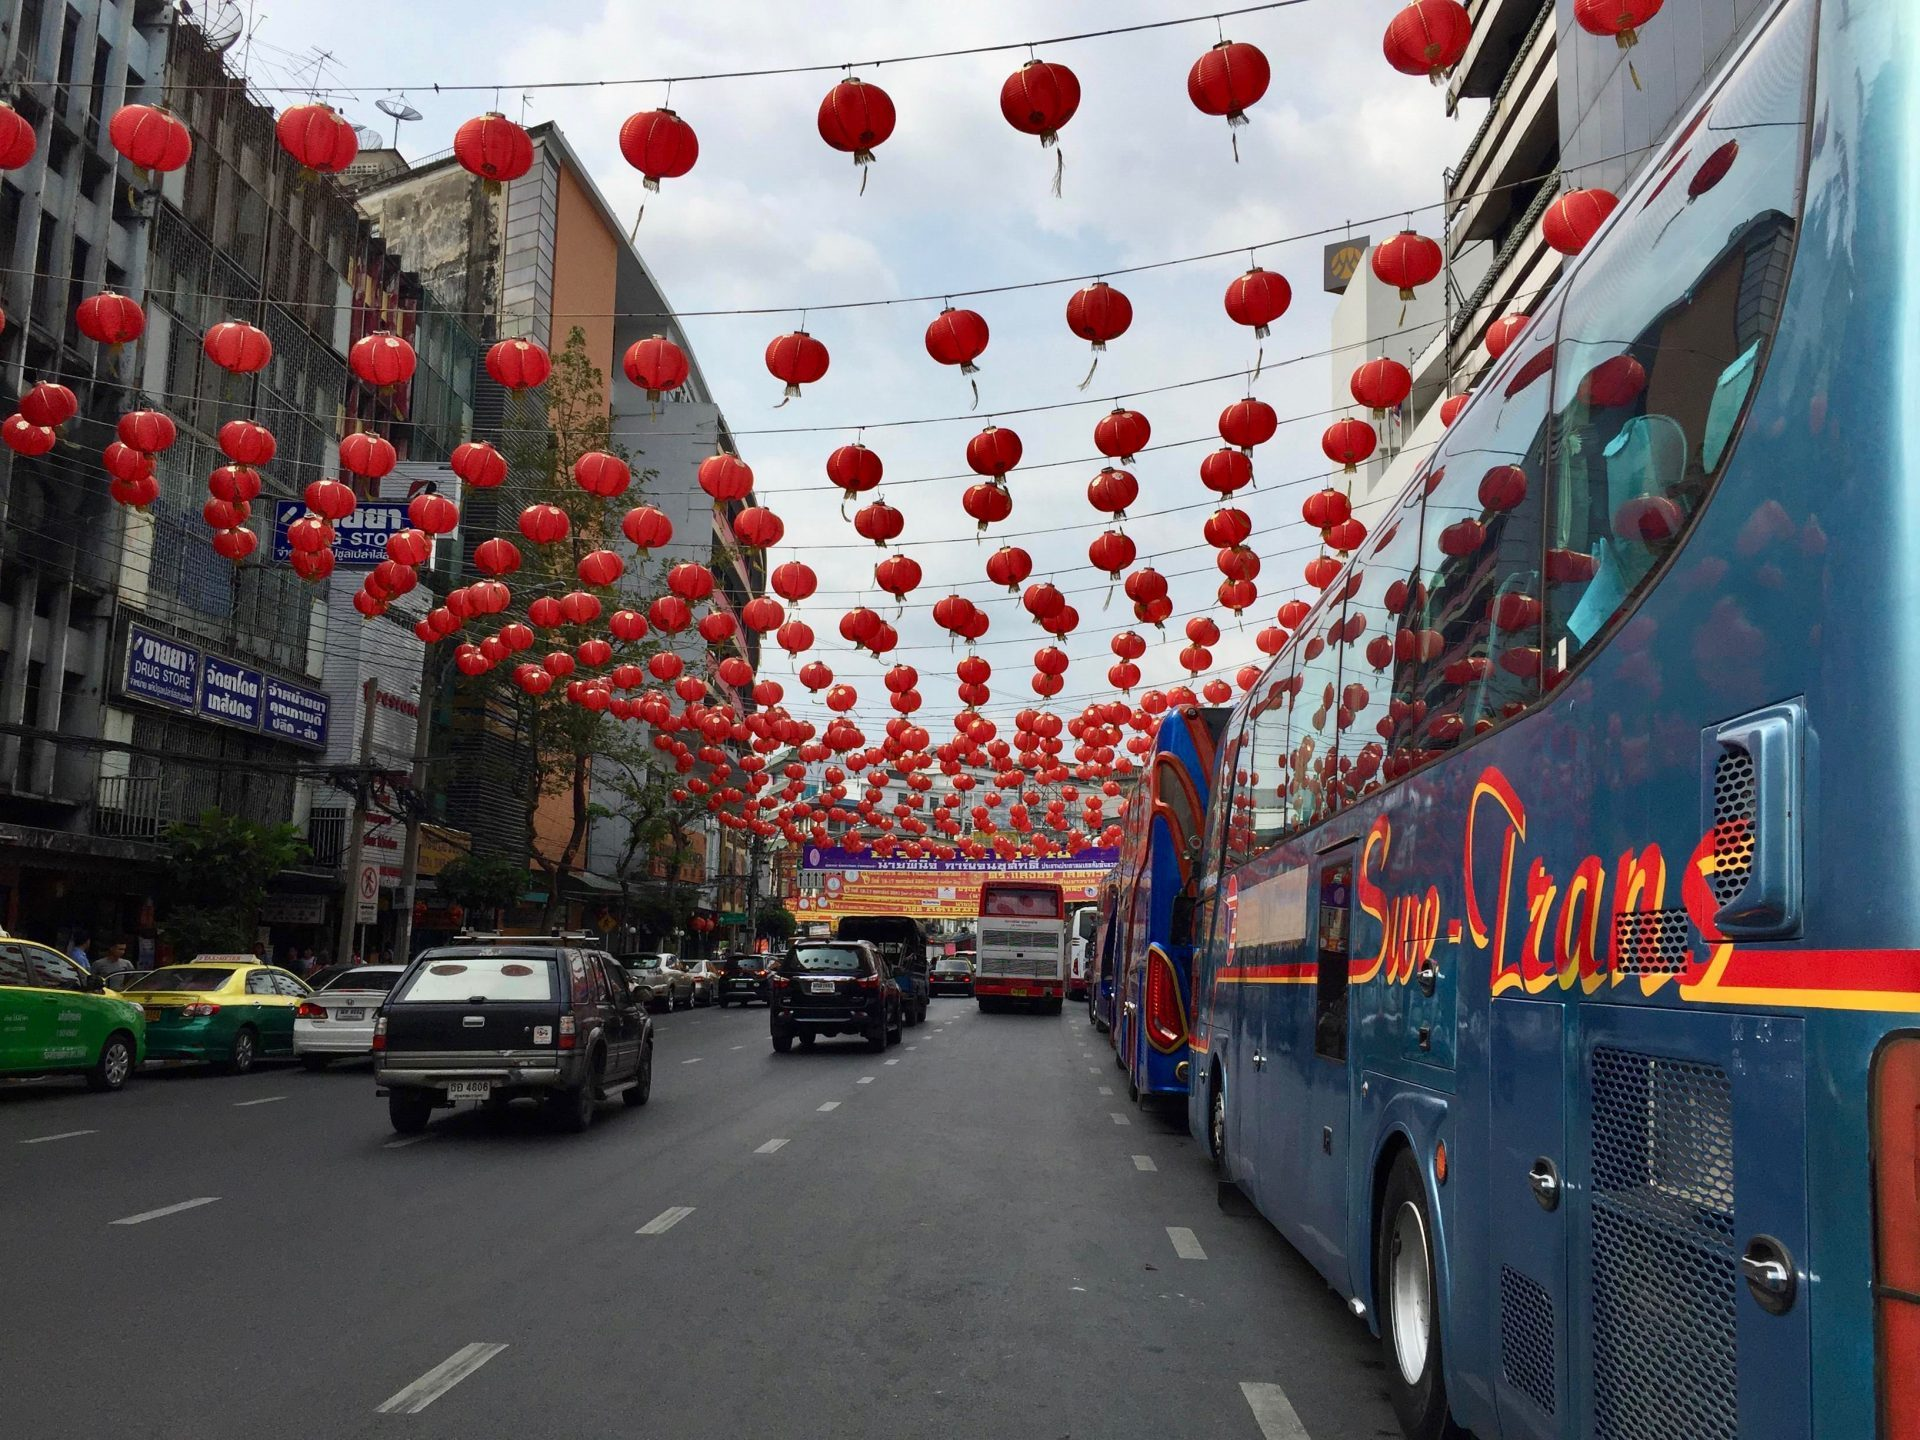 Chinatown, the first spot that our bus stopped after going from Pattaya to Bangkok.